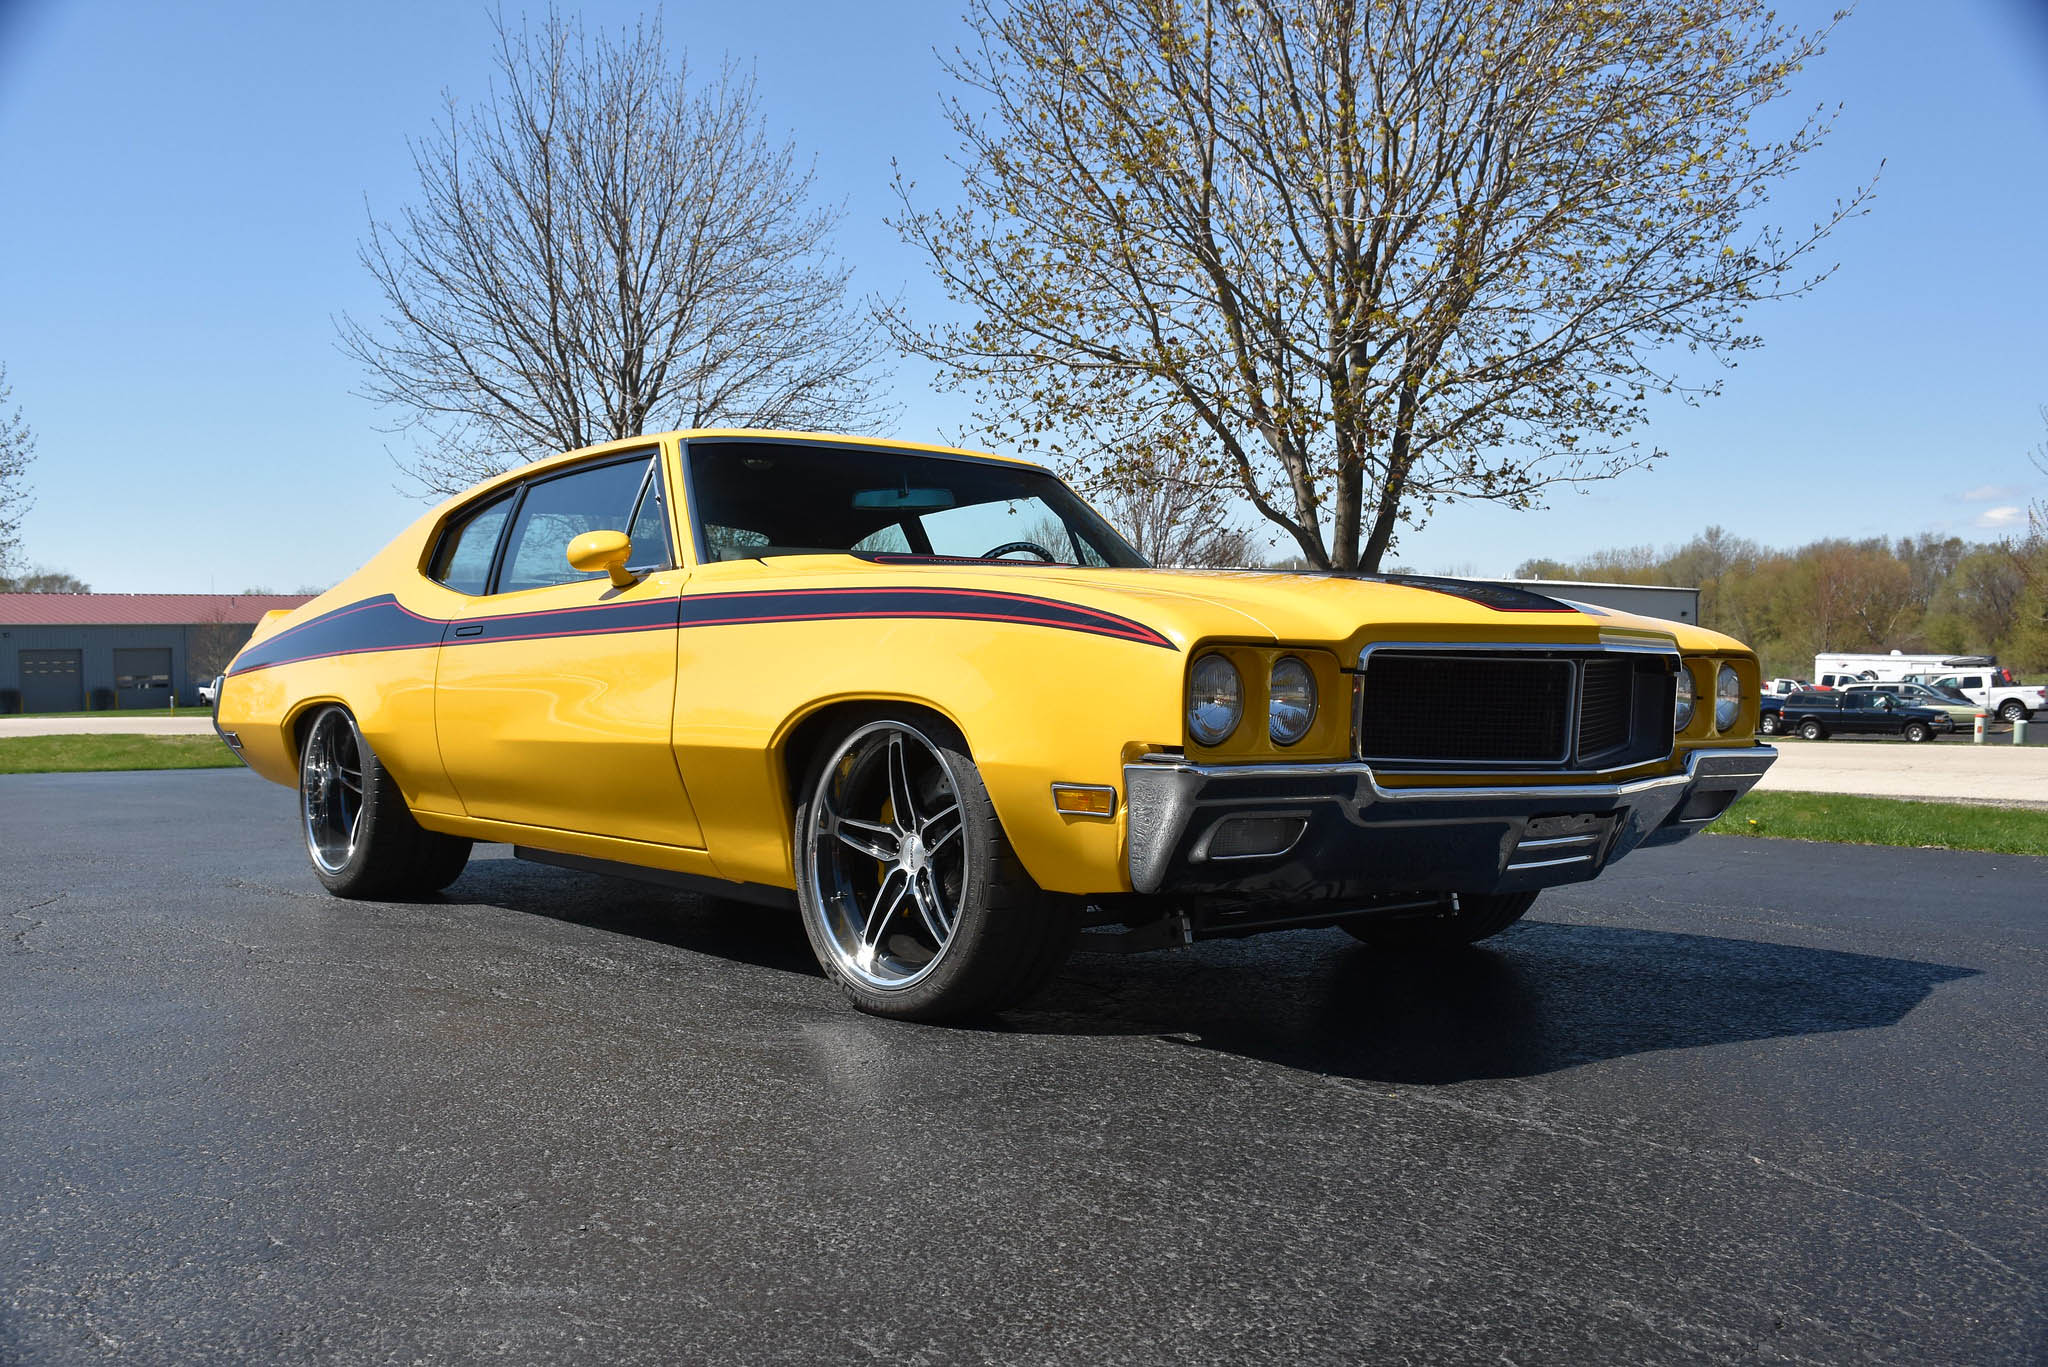 1970 Buick Skylark with a LS7 V8